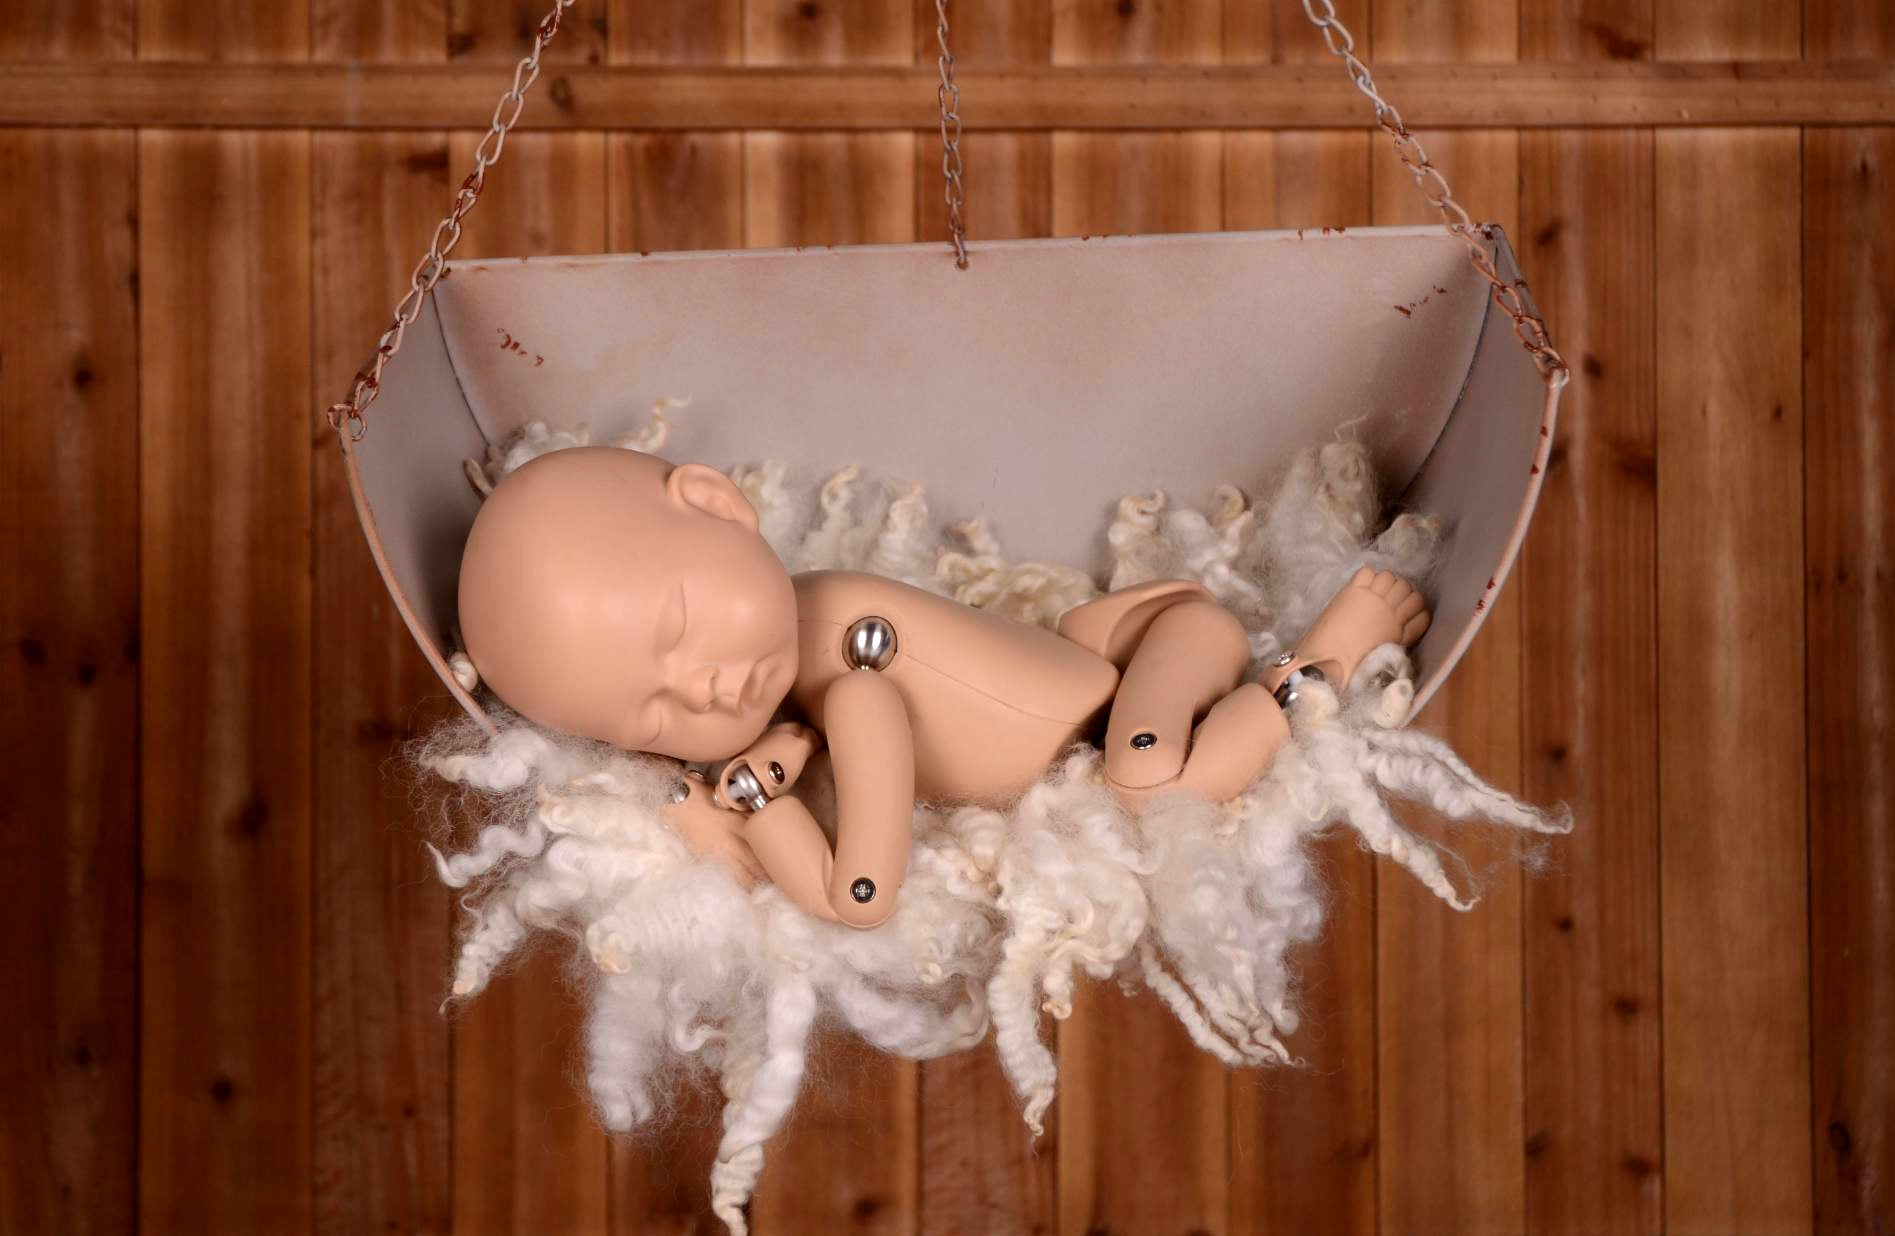 Vintage Hanging Weighing Scale-Newborn Photography Props